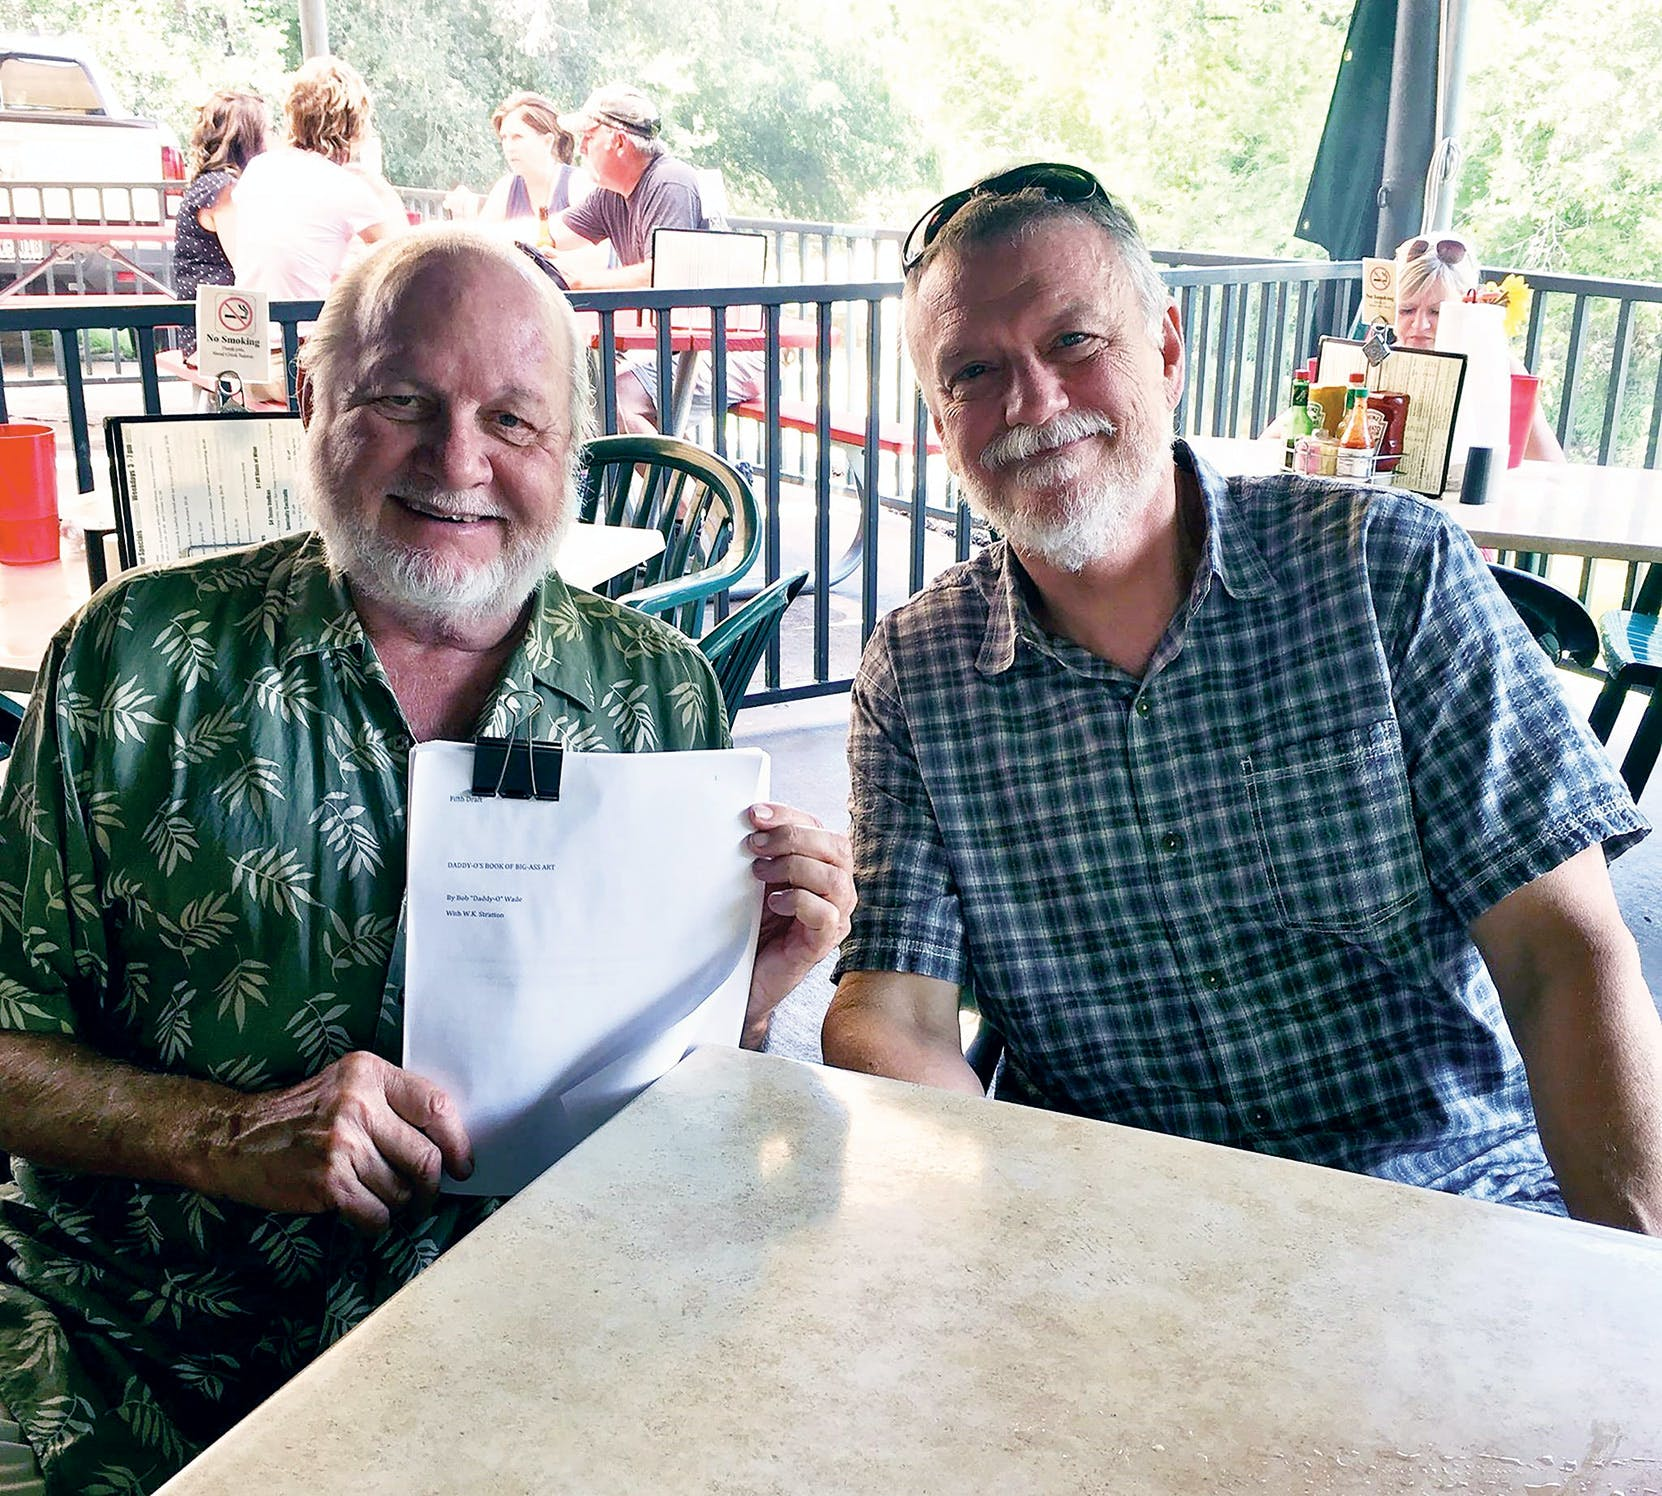 Bob and the author, W.K. Stratton, at Shoal Creek Saloon in Austin.